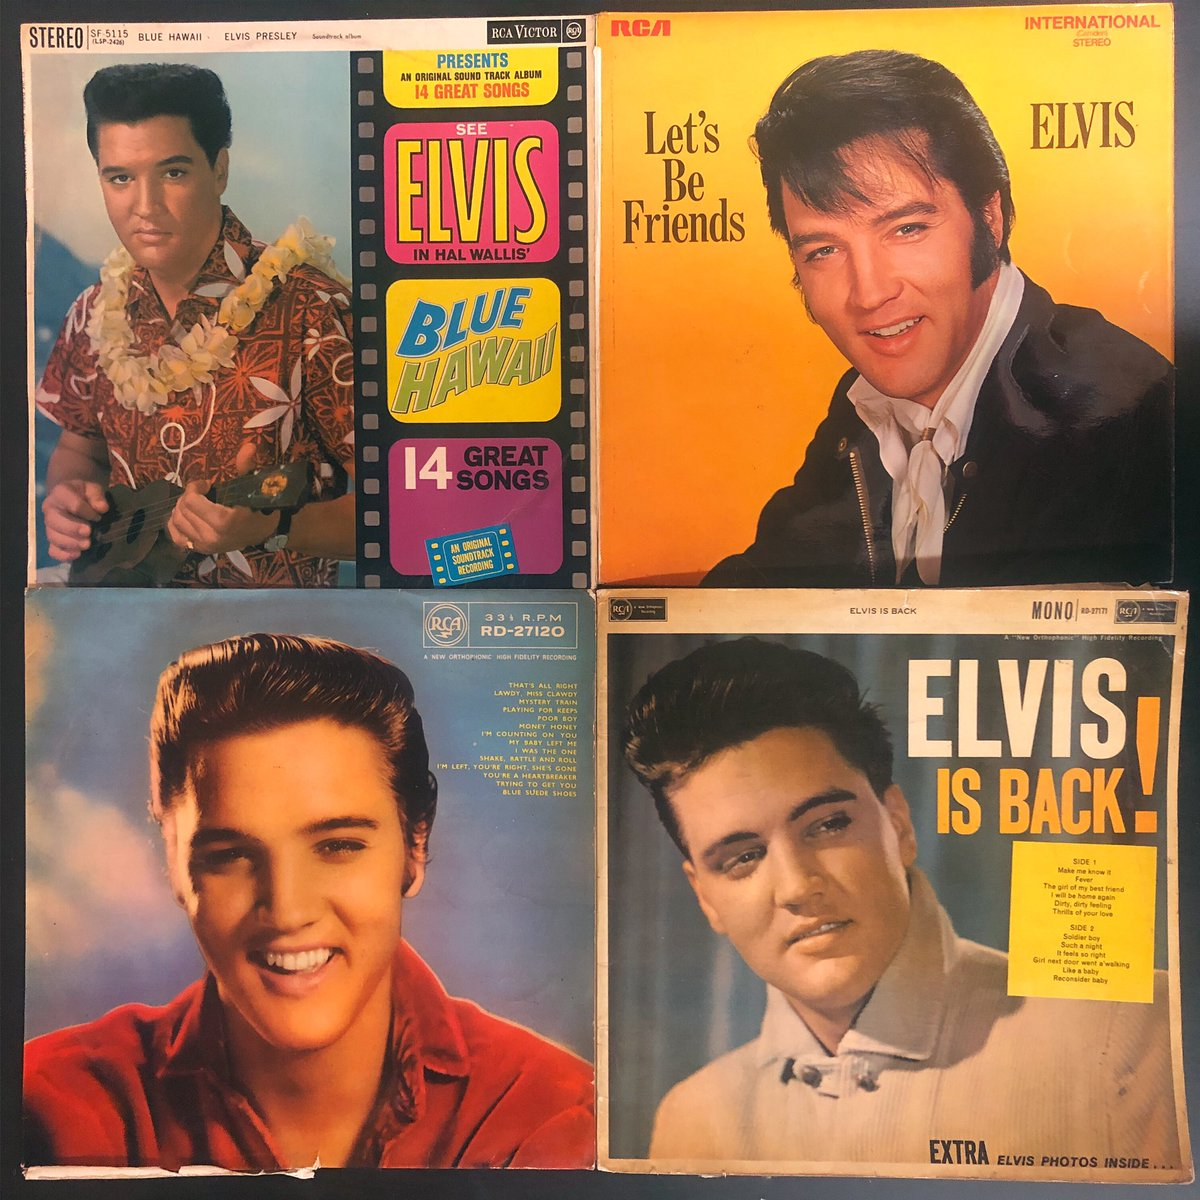 Just got these beauties from the king of rock and roll in. All hail! . . . . . #justin #elvis #elvispresley #elvisthepelvis #theking #supportlocal #localbusiness #musicshop #liverpool #digatthedock #popup #albertdock #recordoftheday #vinyl #record #recordstore #recordshoppic.twitter.com/1d9yCqlyL9